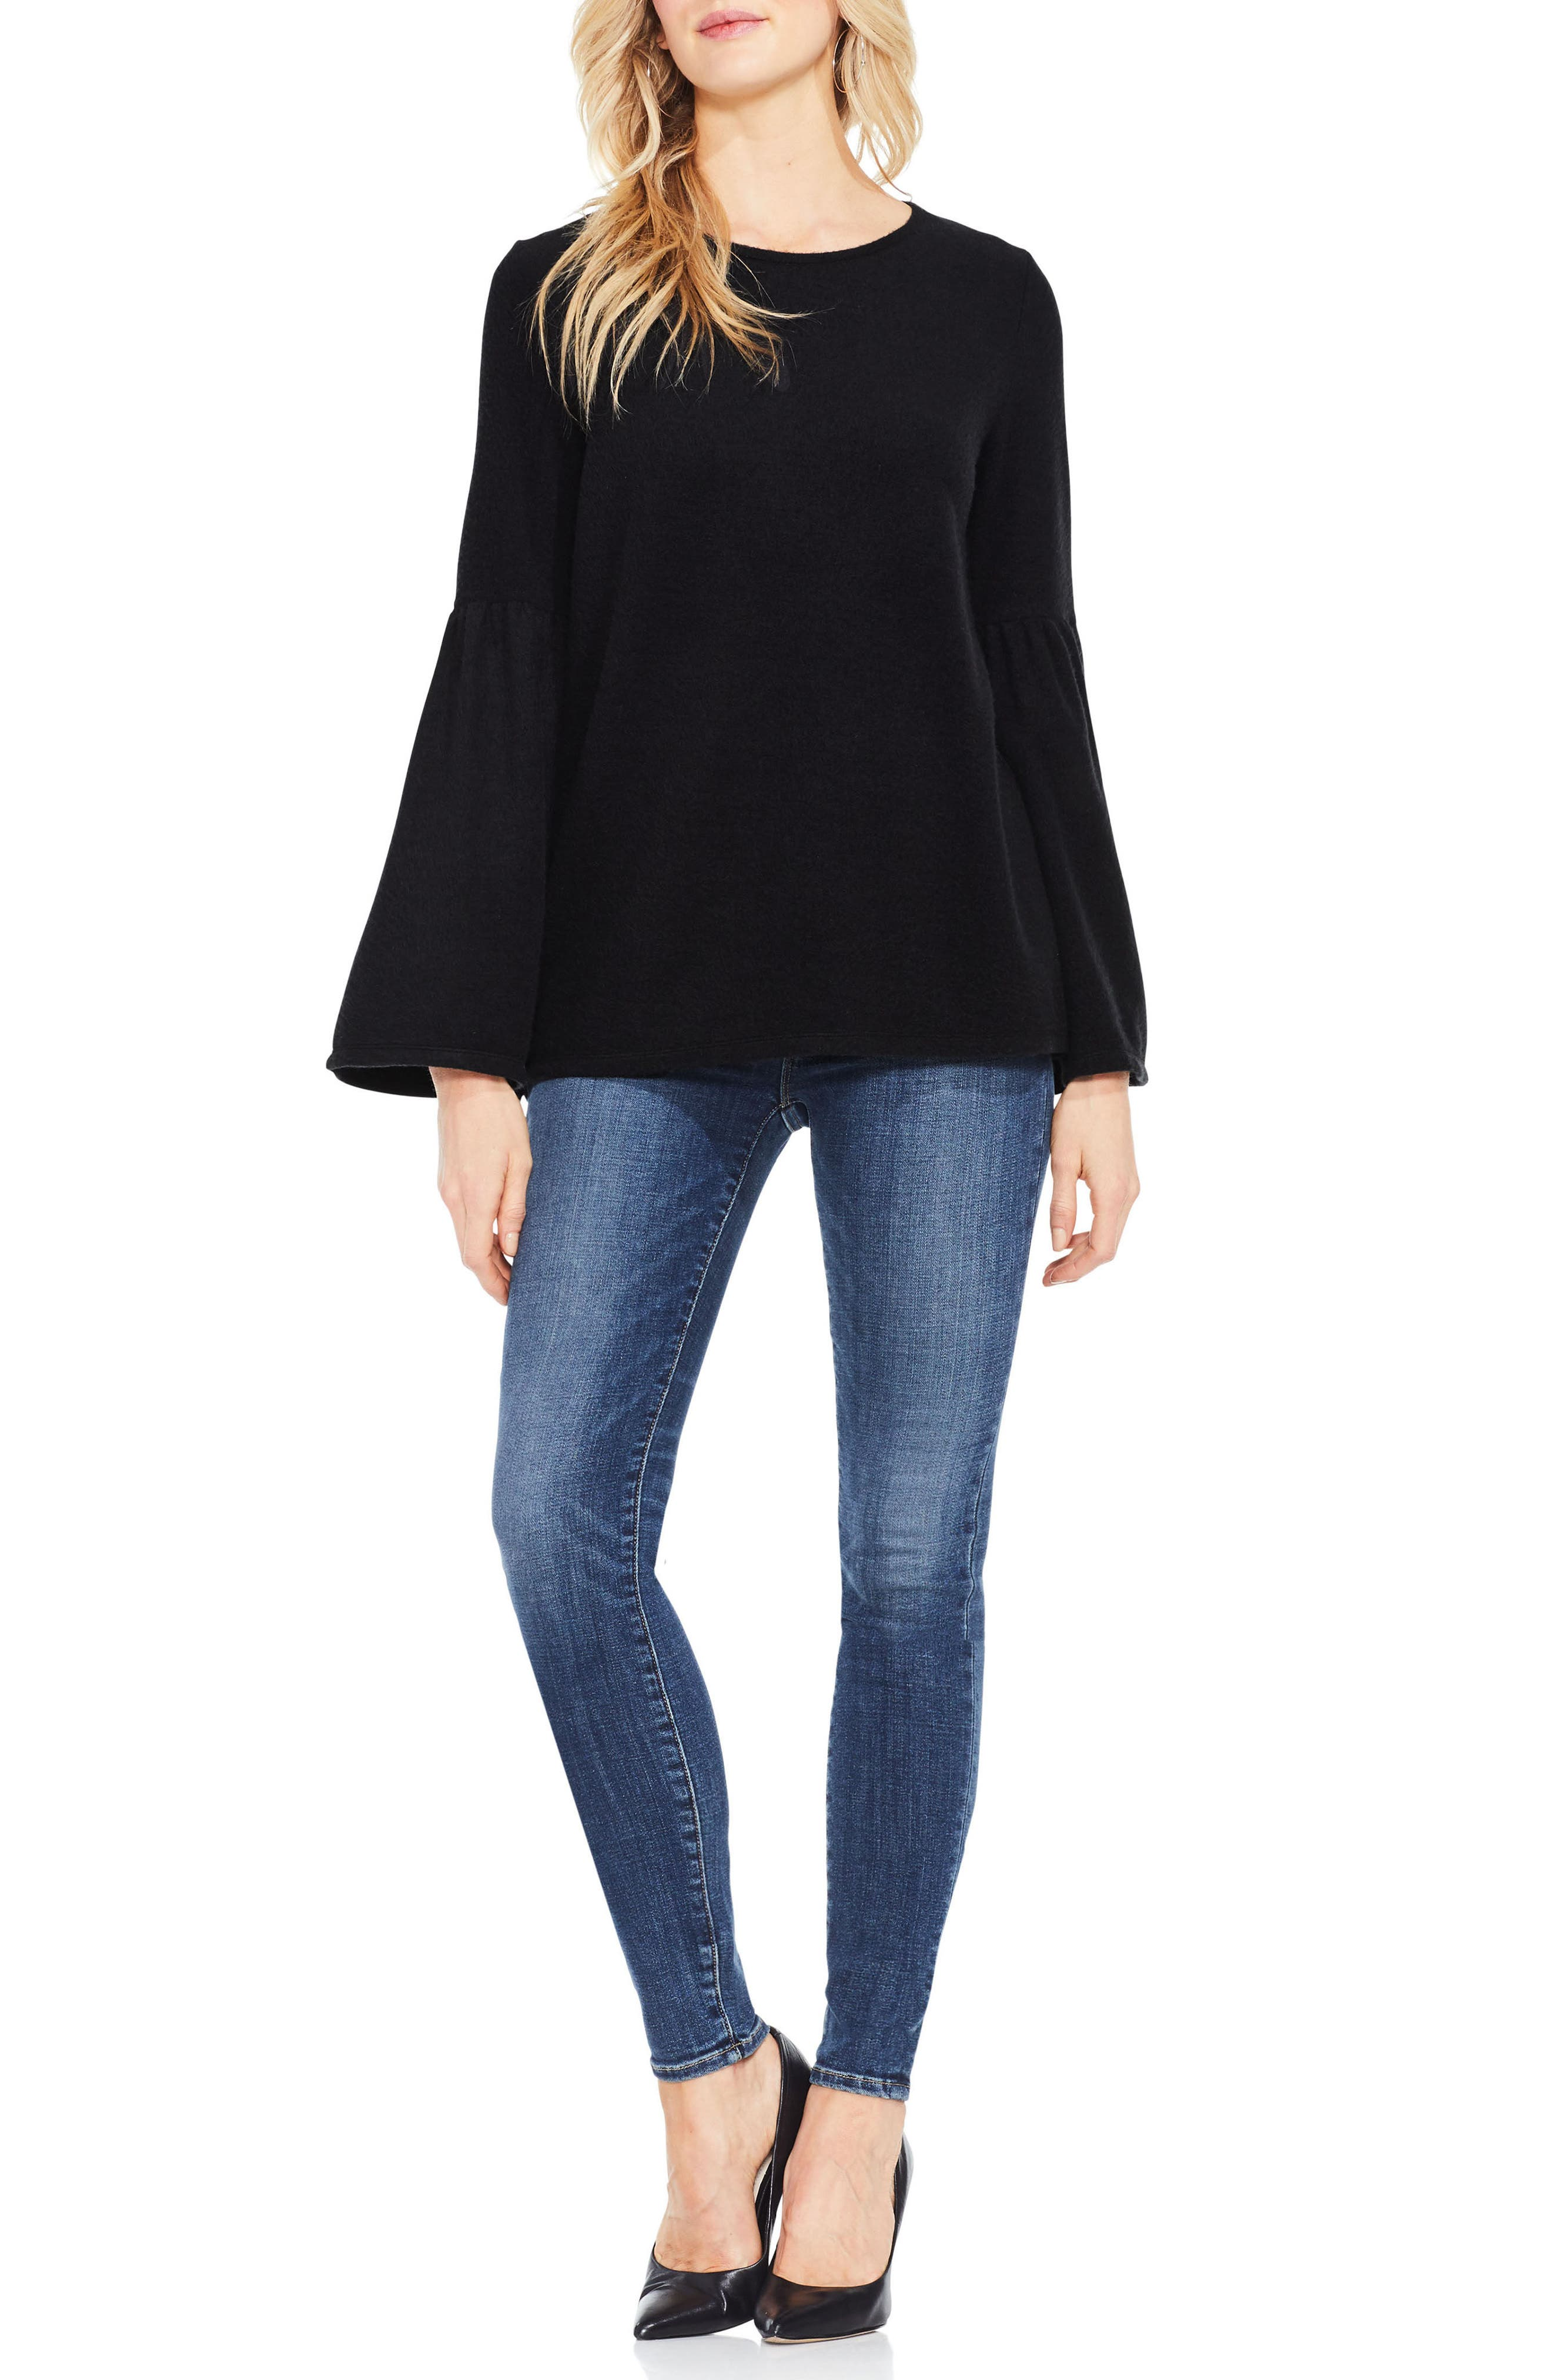 Vince Camuto Ruched Bell Sleeve Fleece Top,                             Alternate thumbnail 3, color,                             006